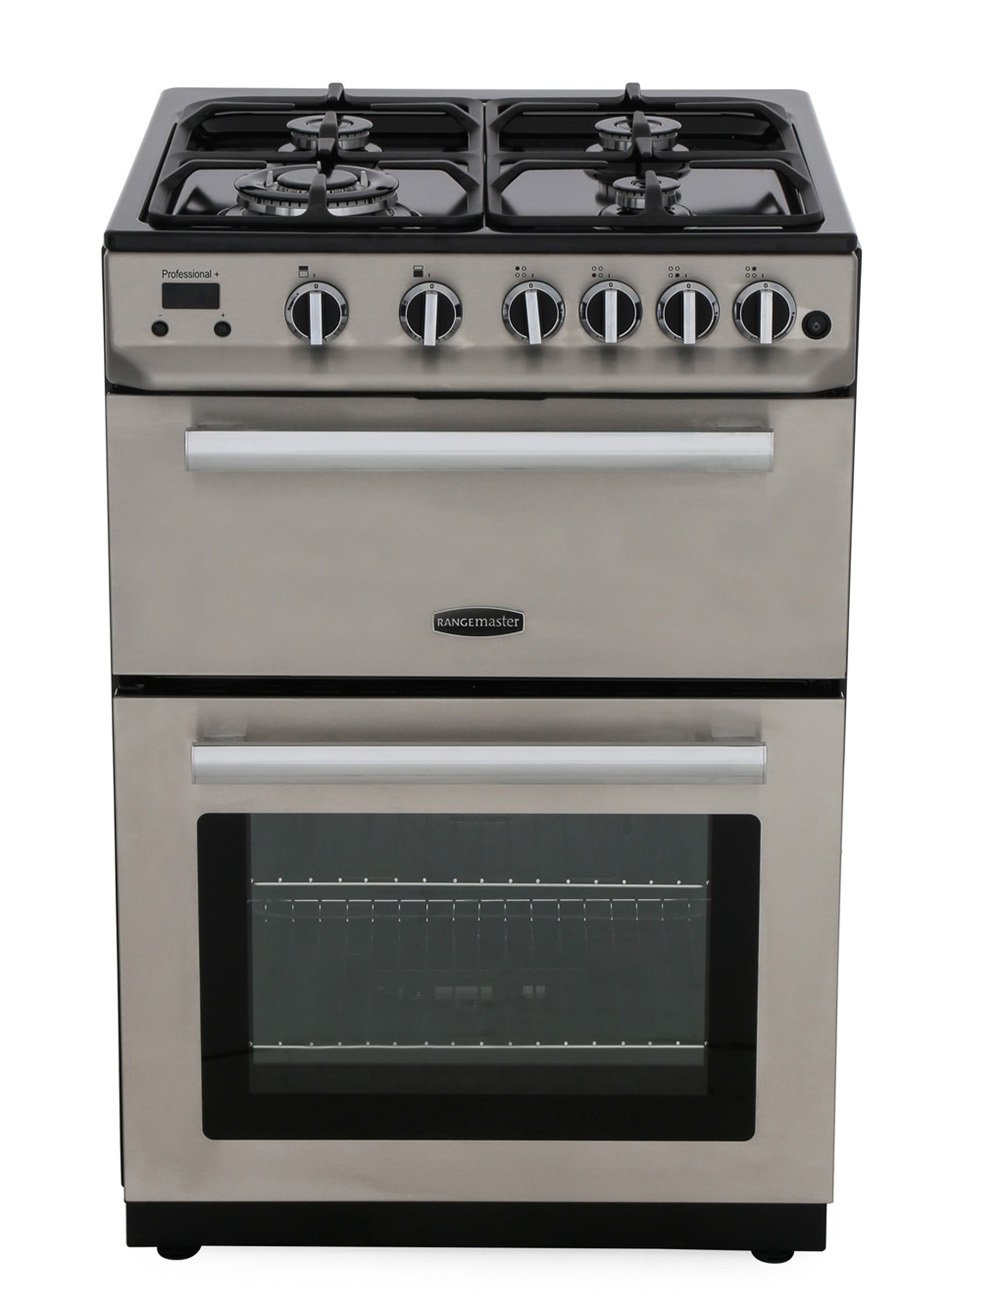 Rangemaster PROP60NGFSS/C Professional Plus 60 NG Stainless Steel with Chrome Trim Gas Cooker with Double Oven